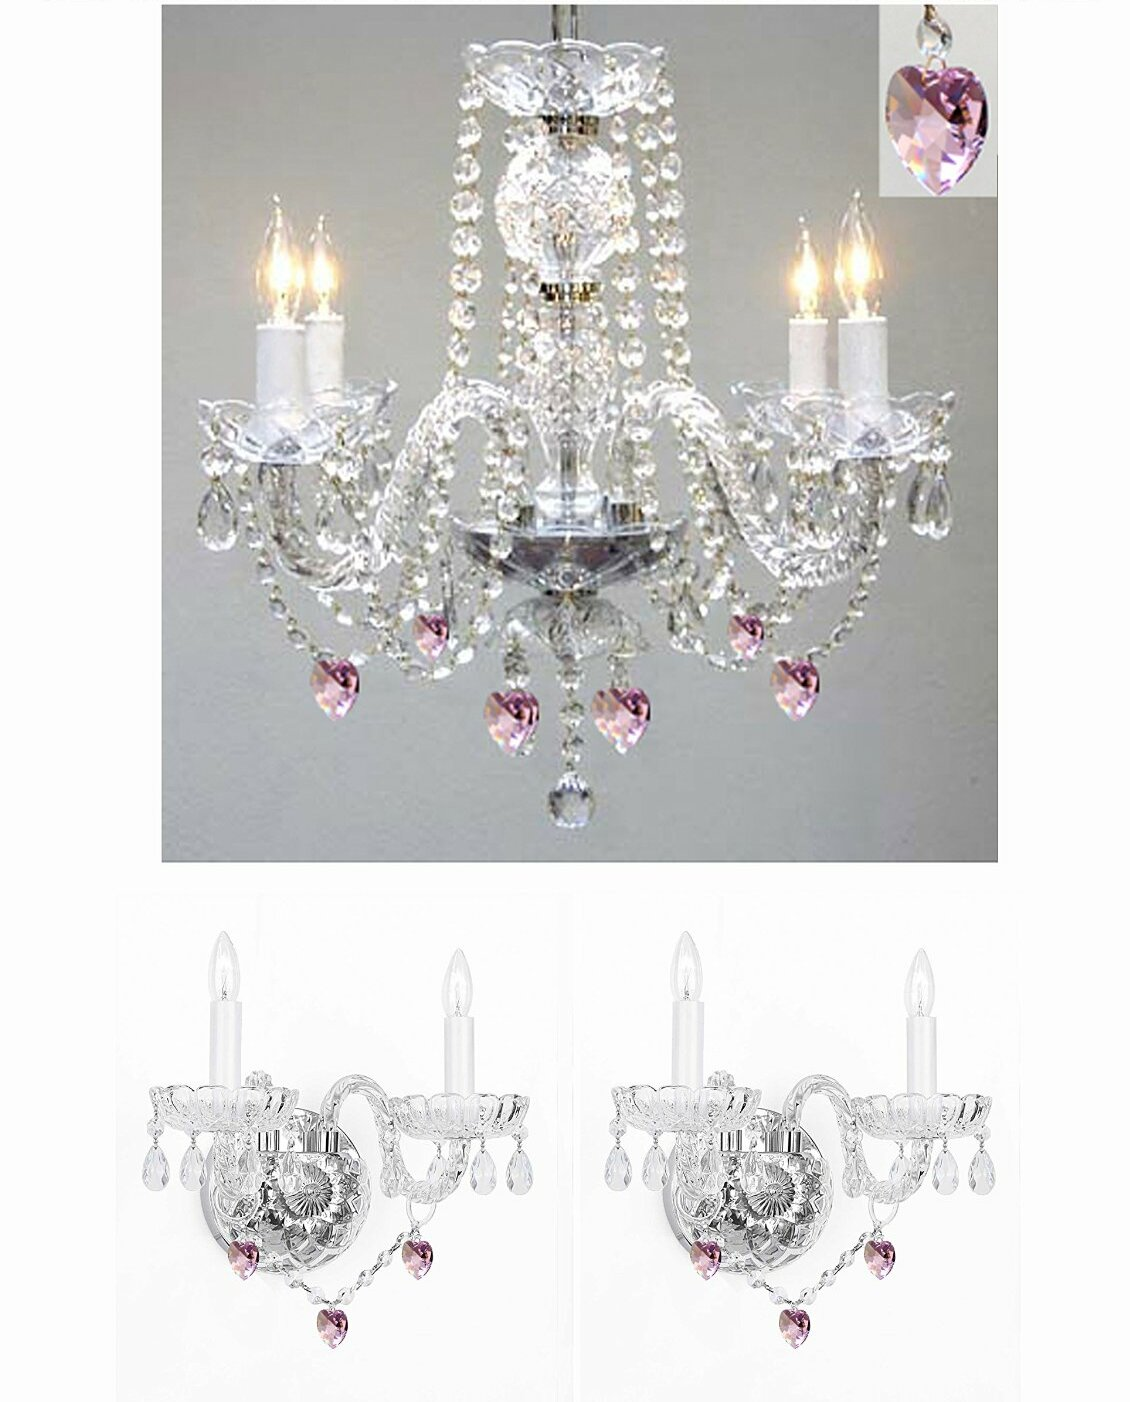 House Of Hampton Keefe 3 Piece Candle Style Chandelier And Wall Sconce Set Wayfair